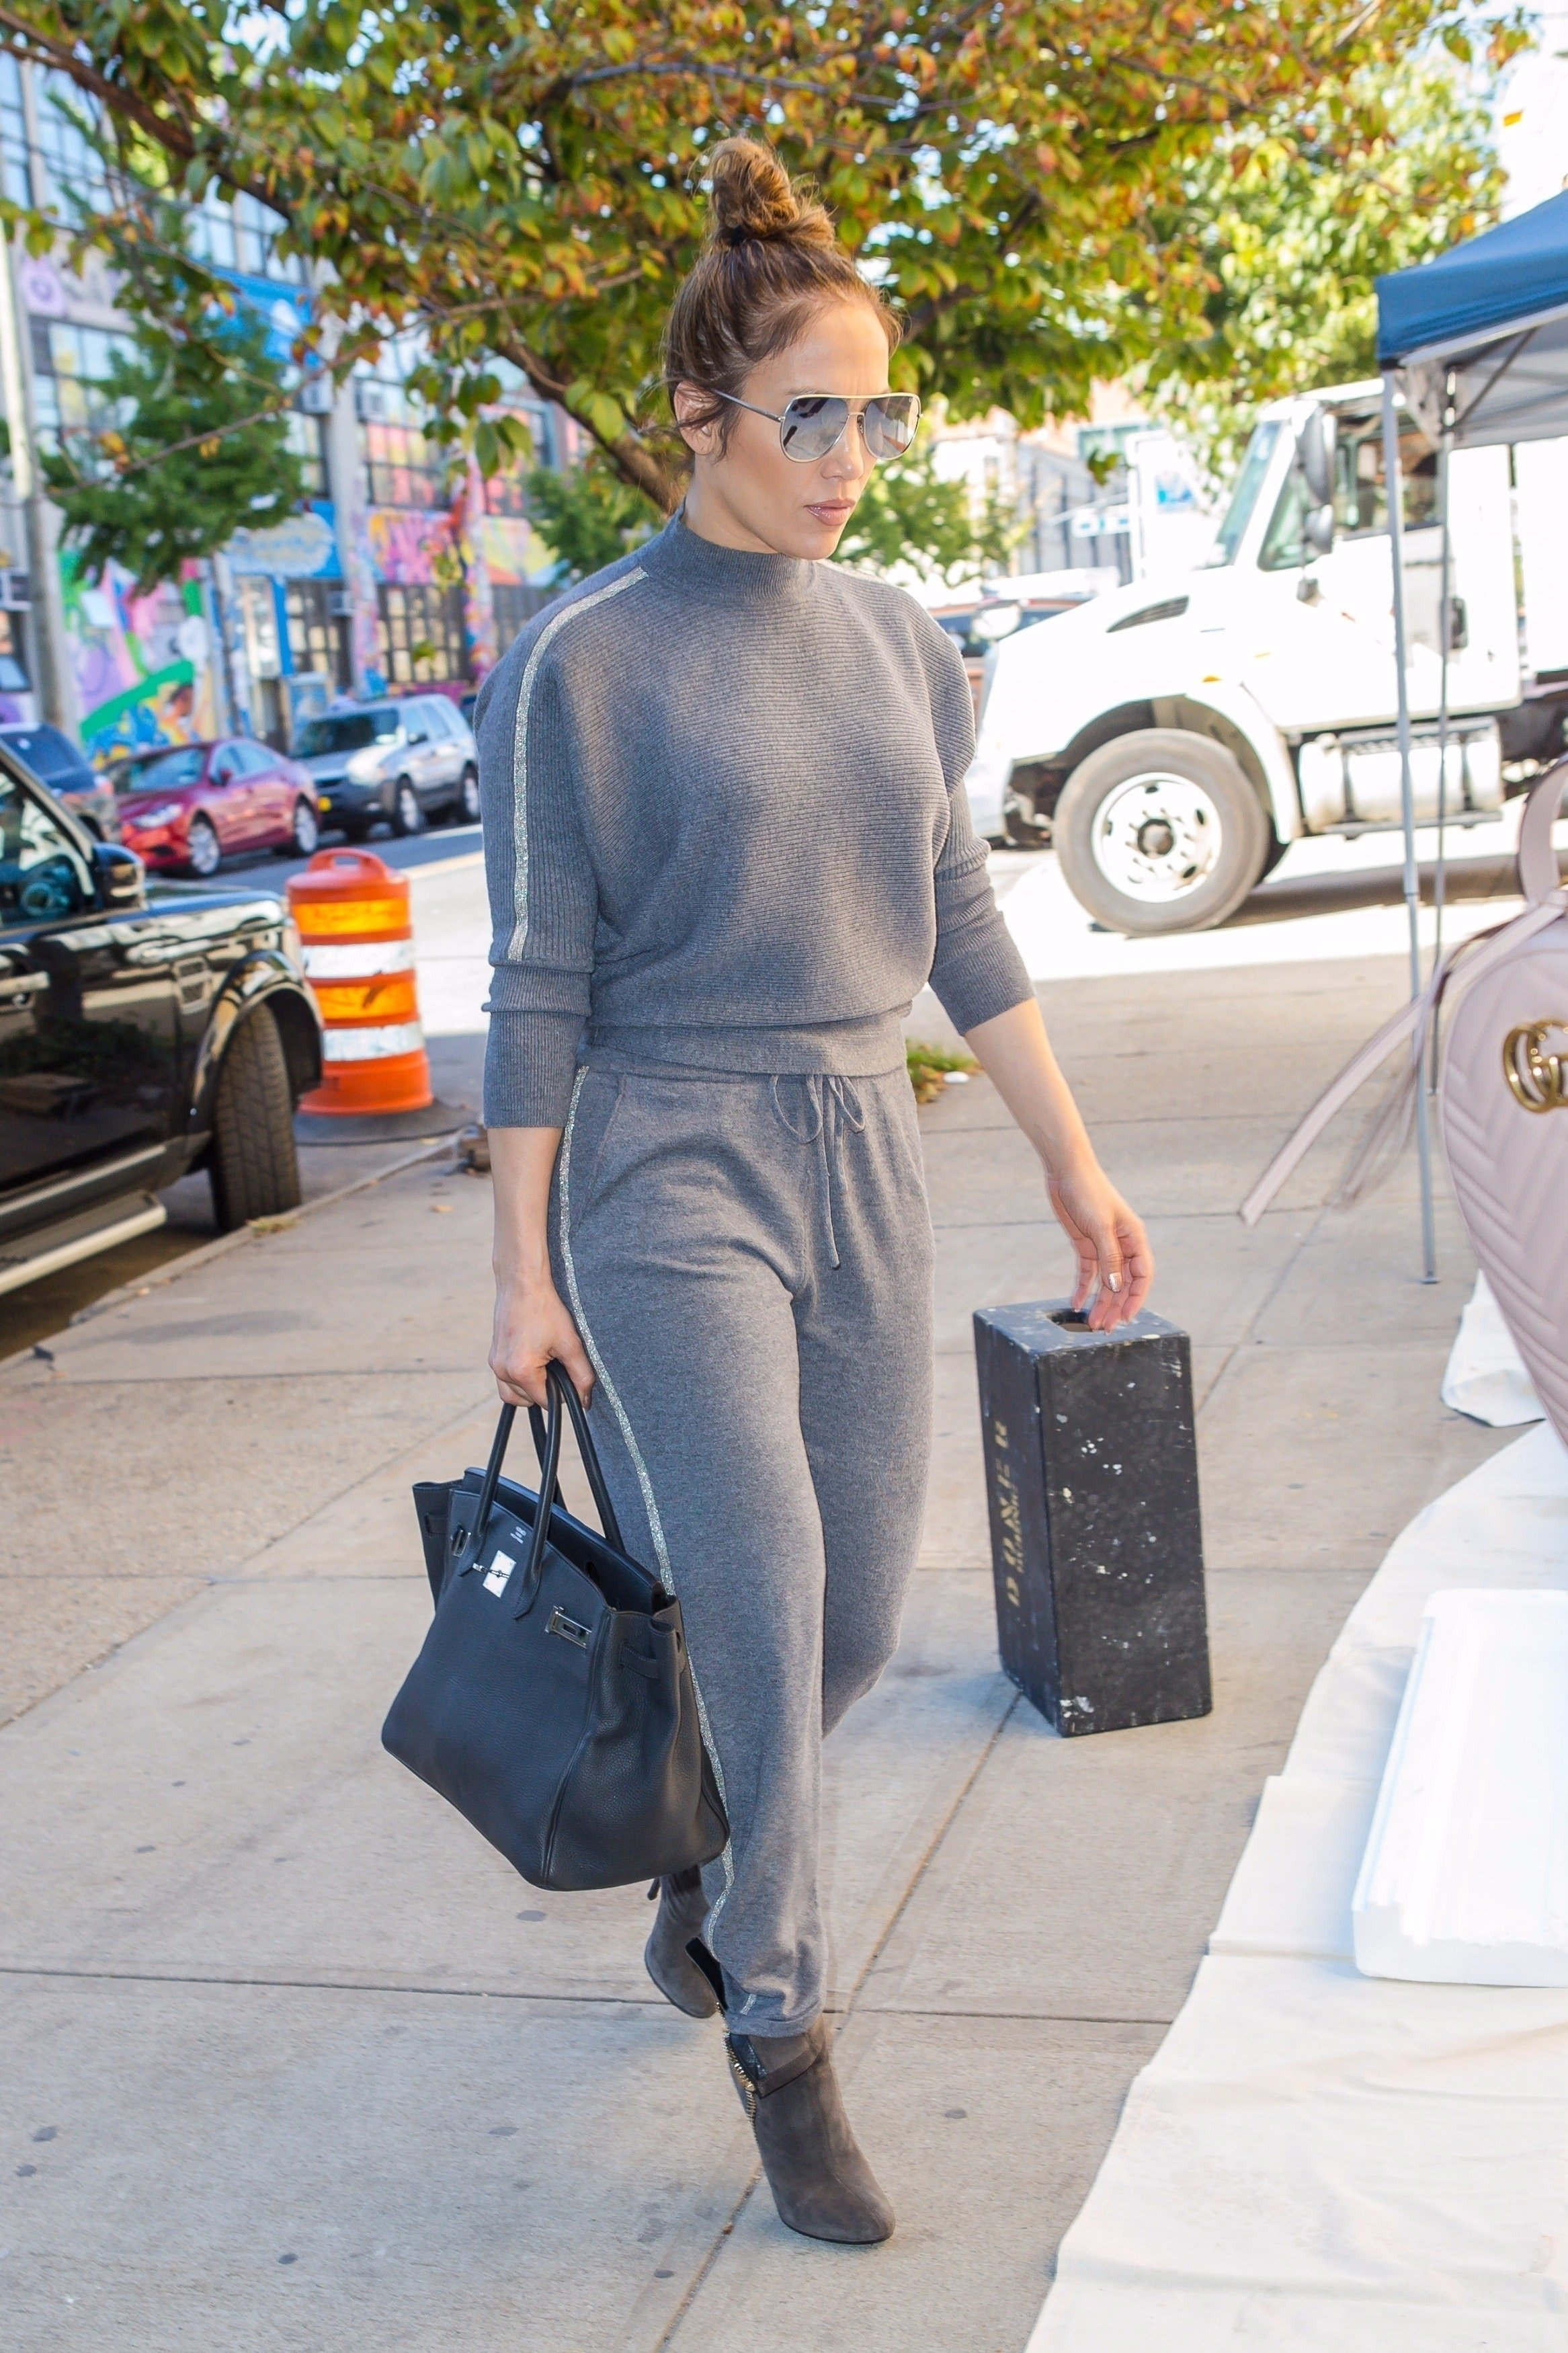 New York, NY  - *EXCLUSIVE*  - Jennifer Lopez shows off her curves as she arrives to the Studio in Brooklyn. Jennifer looks great in an all grey outfit and heels as she heads inside the building.  Pictured: Jennifer Lopez    *UK Clients - Pictures Containing Children Please Pixelate Face Prior To Publication*, Image: 353437722, License: Rights-managed, Restrictions: , Model Release: no, Credit line: Profimedia, AKM-GSI